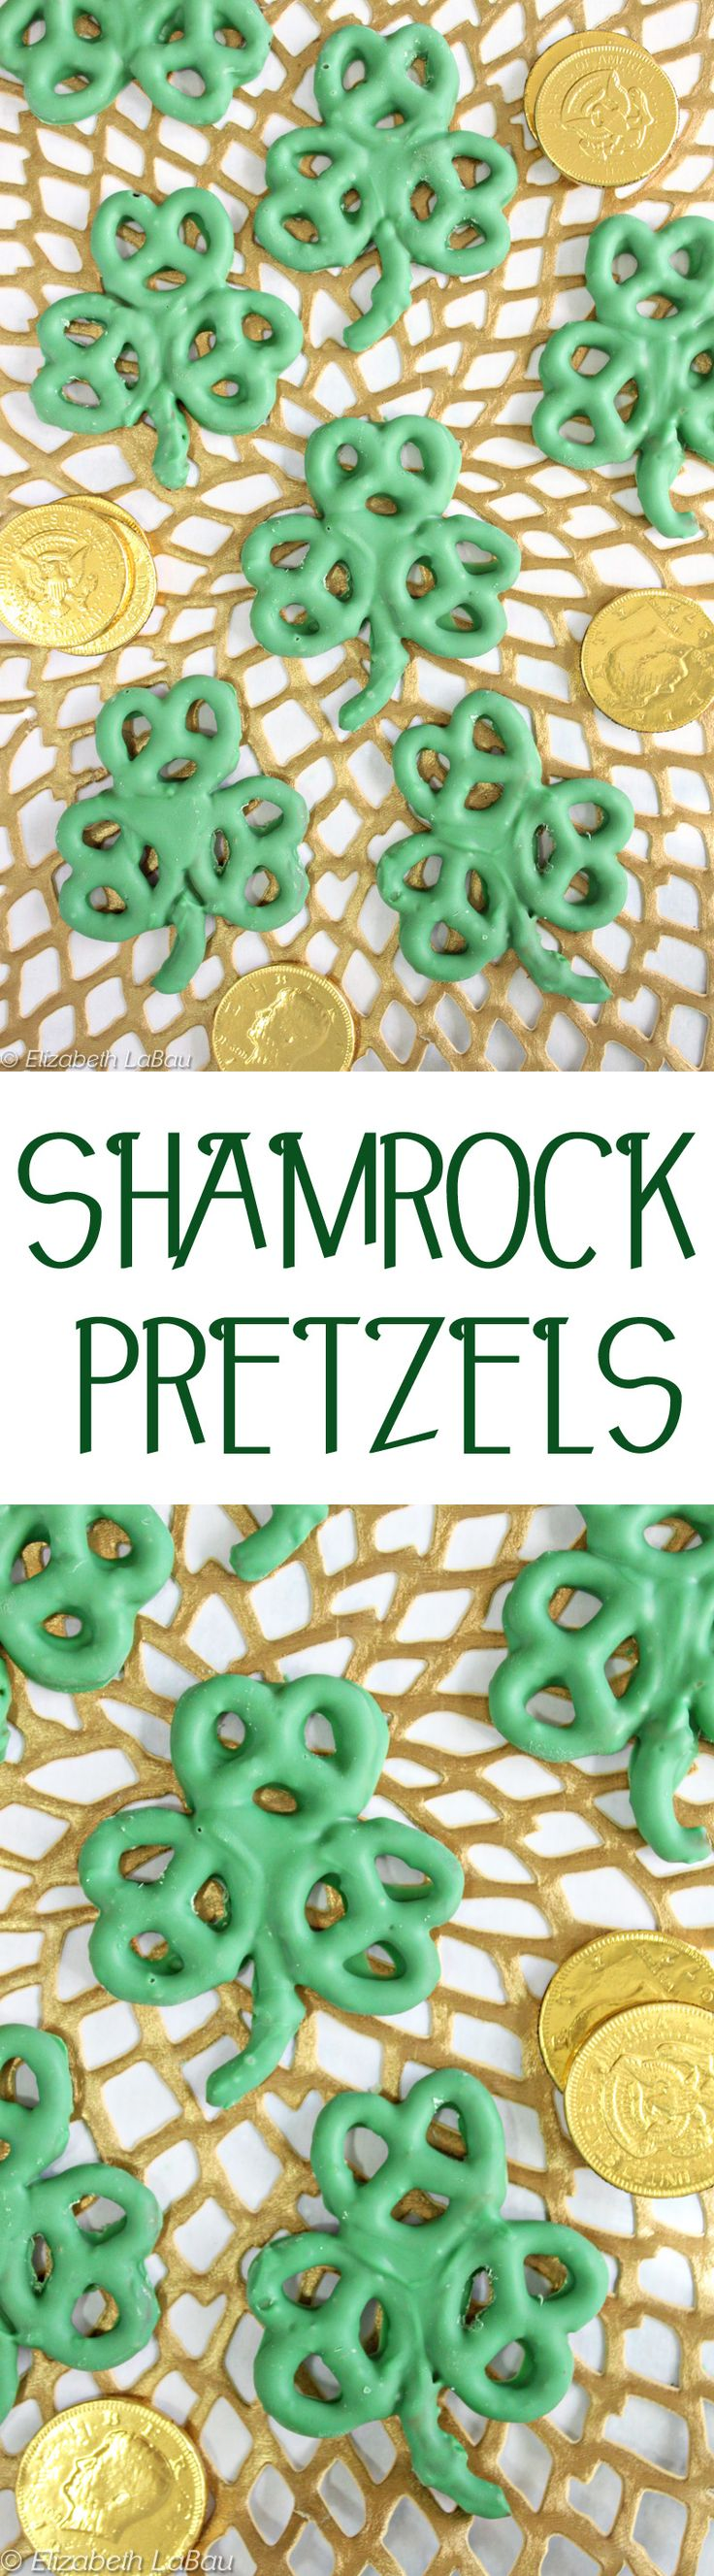 Shamrock Pretzels are a super easy St. Patrick's Day candy! Just 2 ingredients and 10 minutes to make these cute treats--and they're great for kids to help with, too! | From candy.about.com